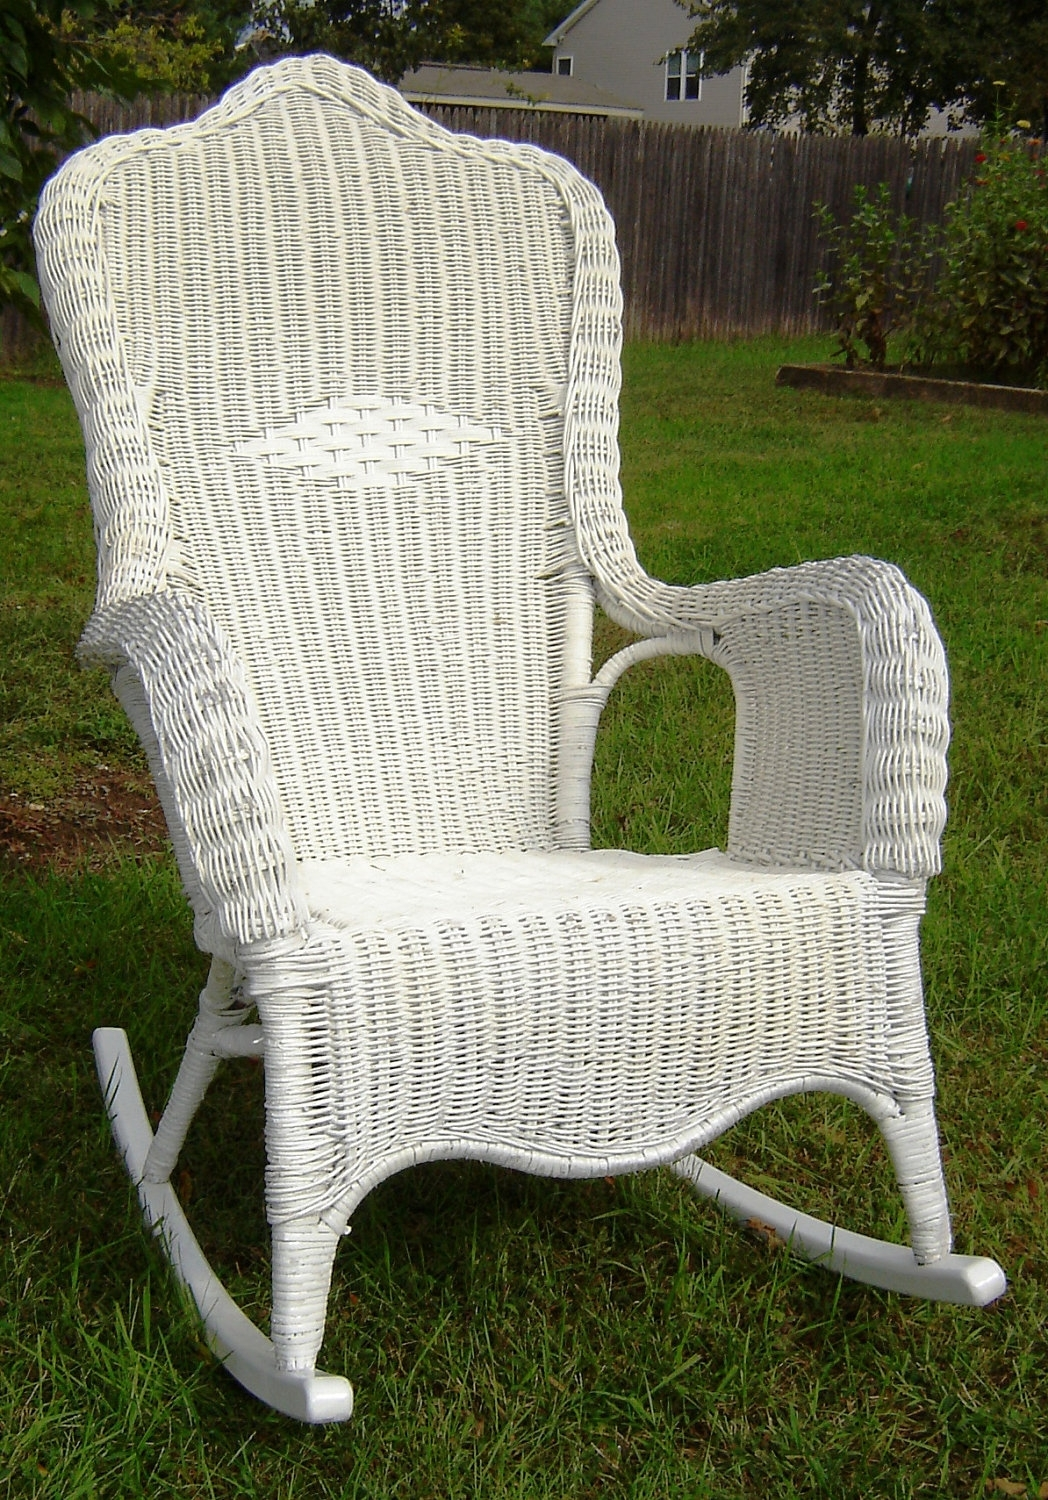 Antique Wicker Rocking Chair Graceful Antique Childrens Chair Of Regarding 2017 Antique Wicker Rocking Chairs (View 2 of 15)